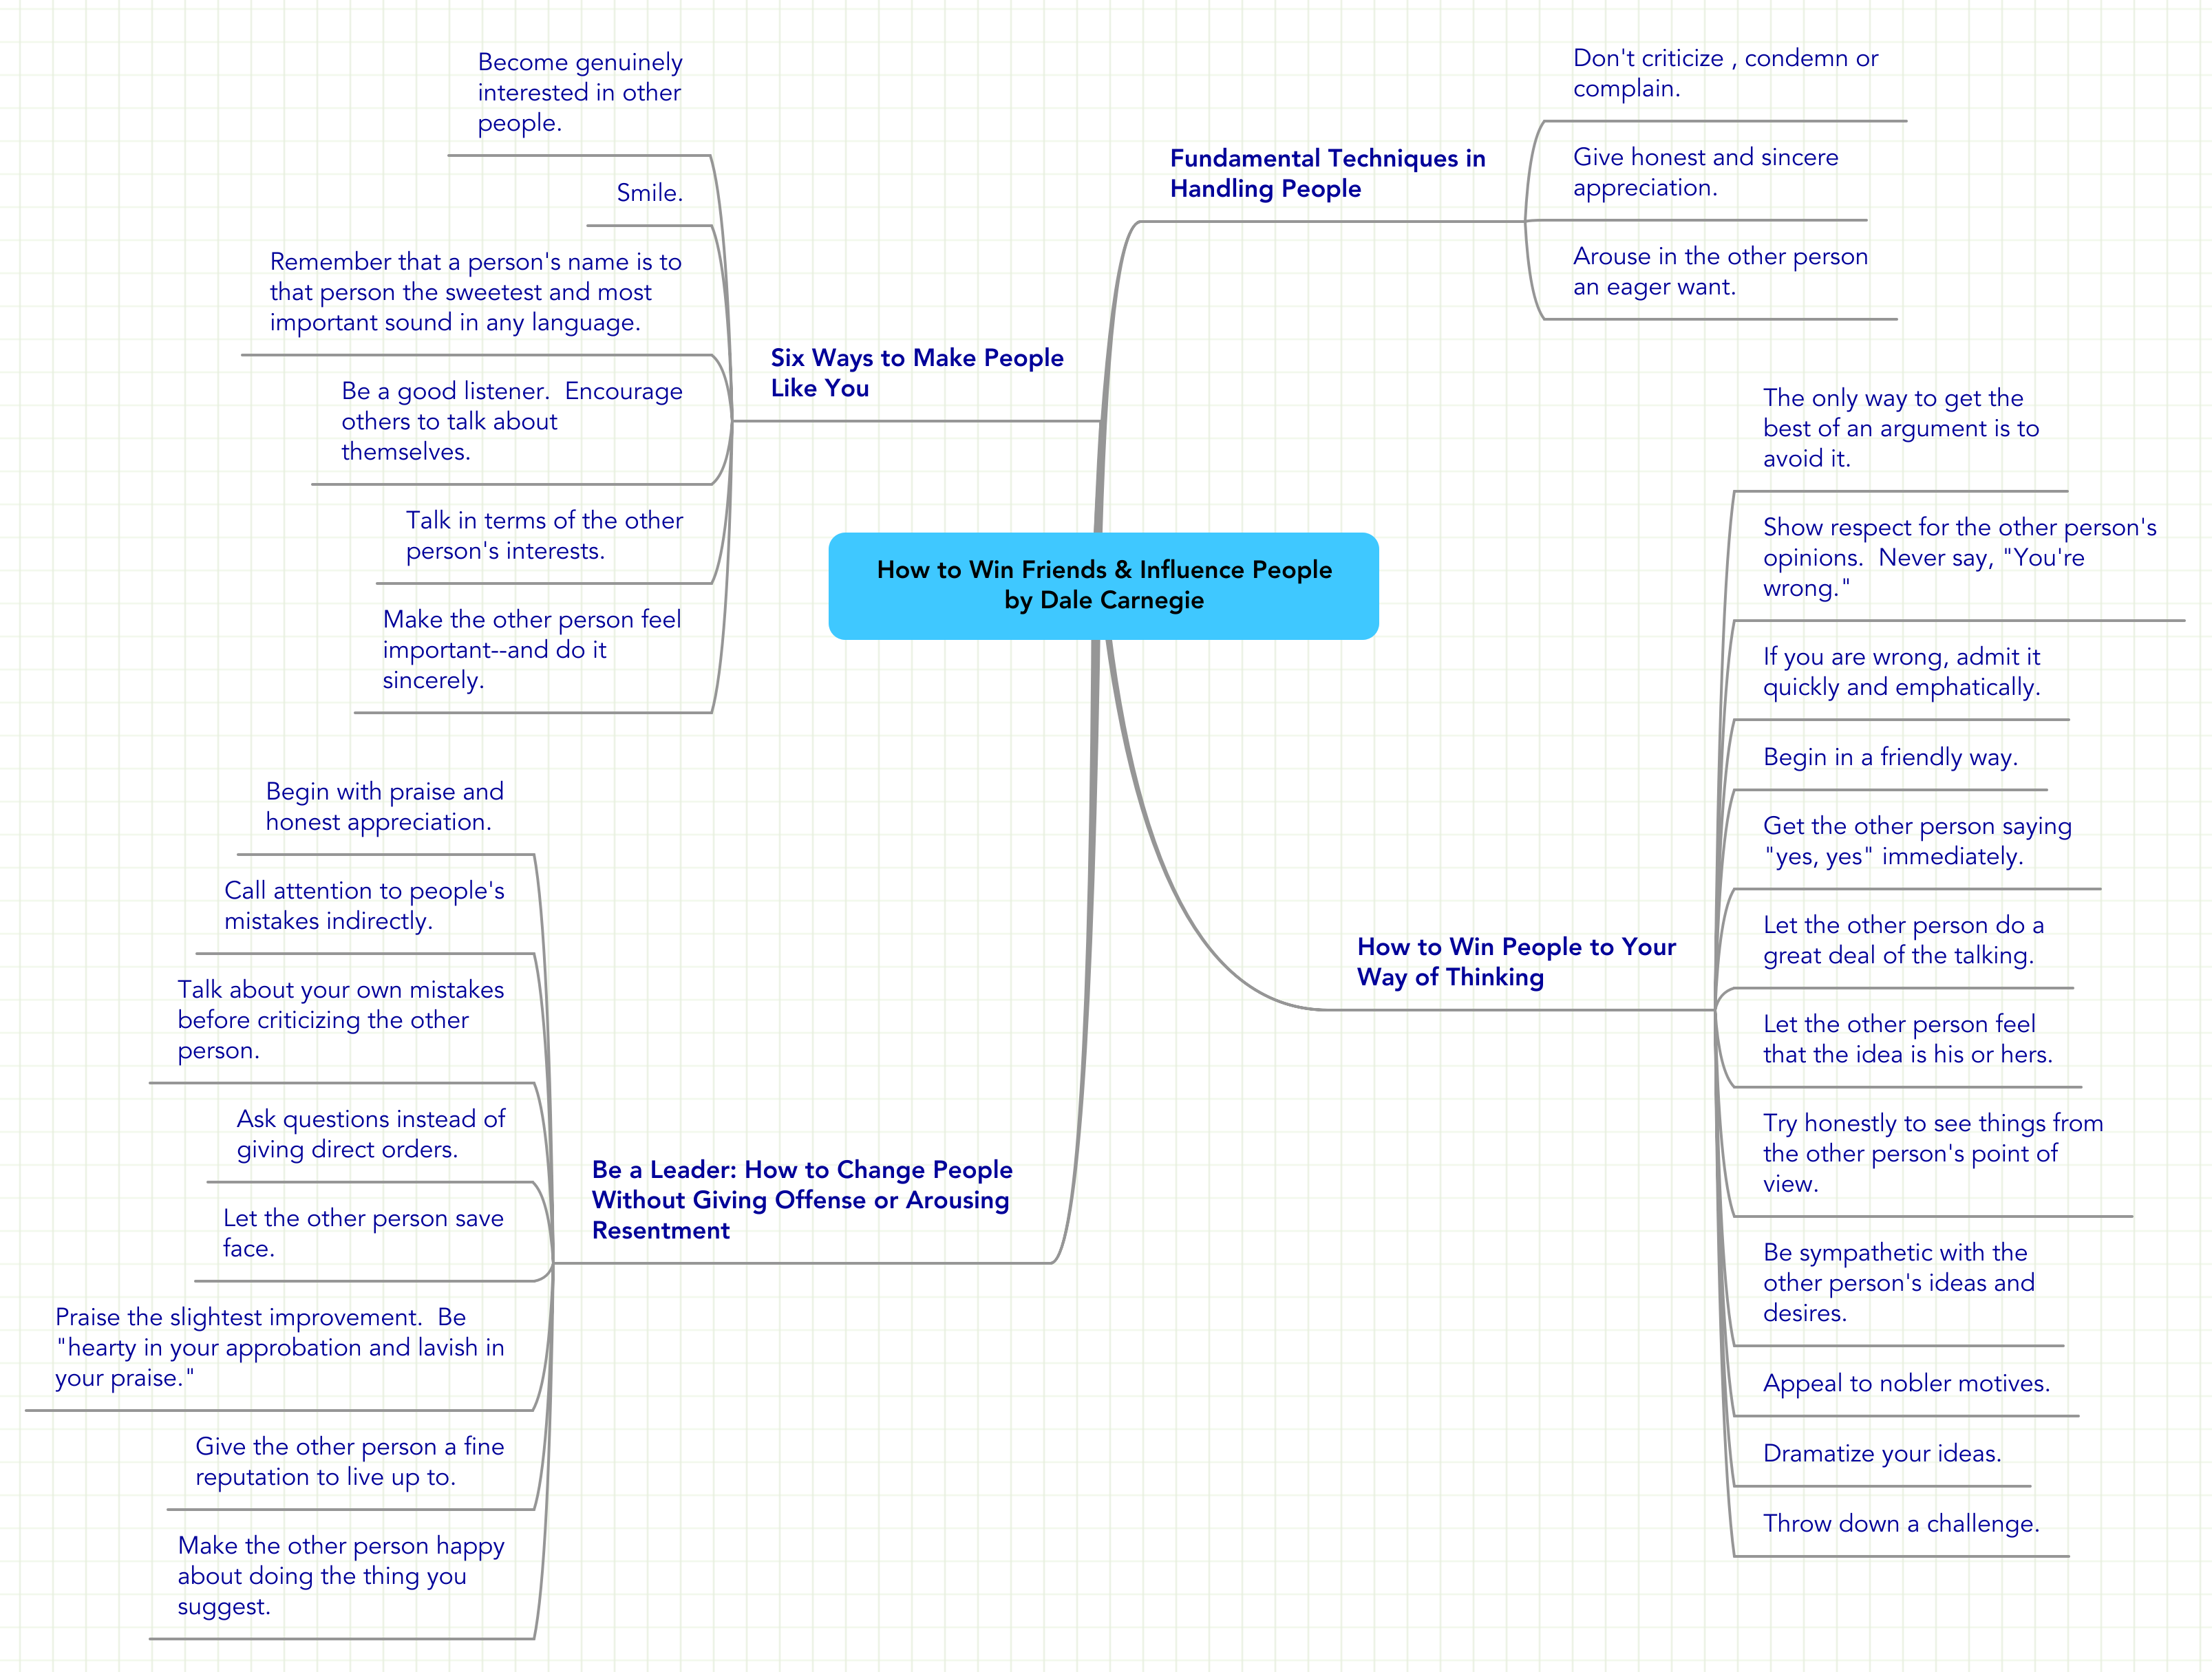 Mind map: How to Win Friends & Influence People